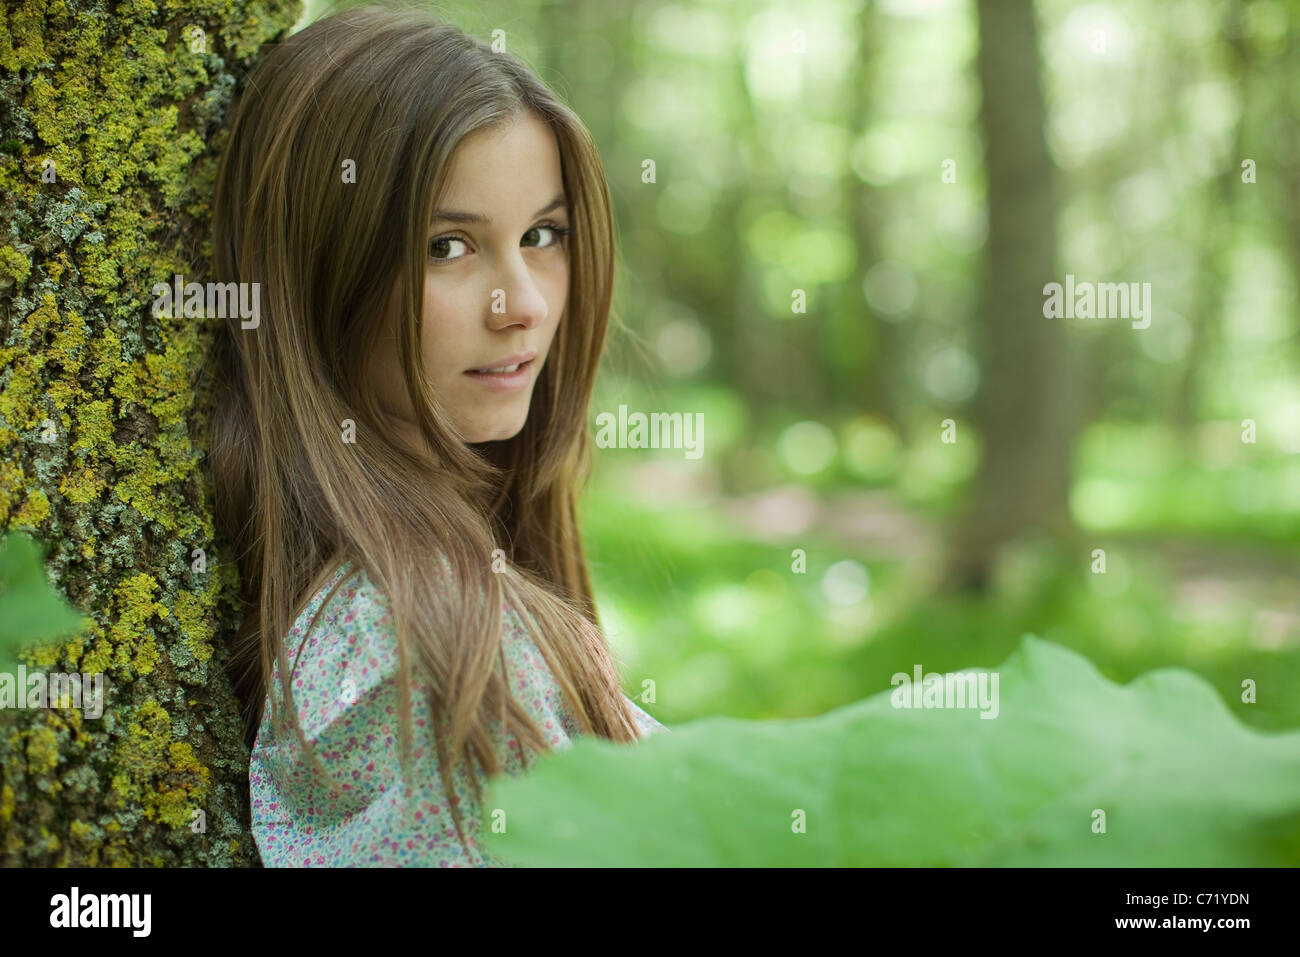 Young woman leaning against tree in woods - Stock Image